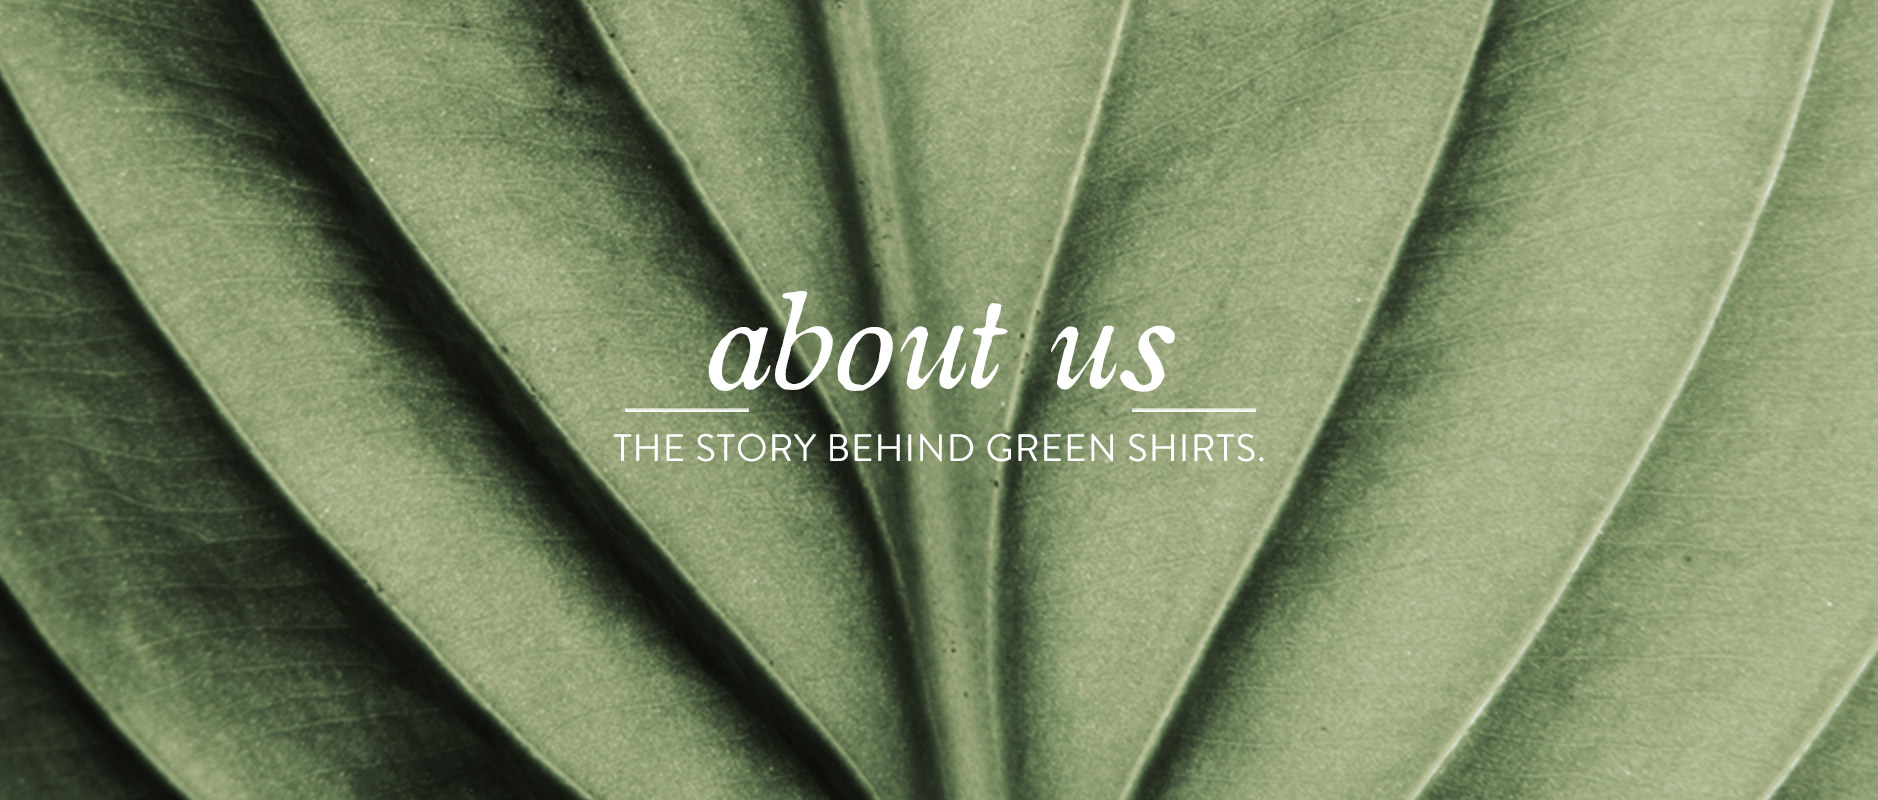 the-story-behind-green-shirts-about-us